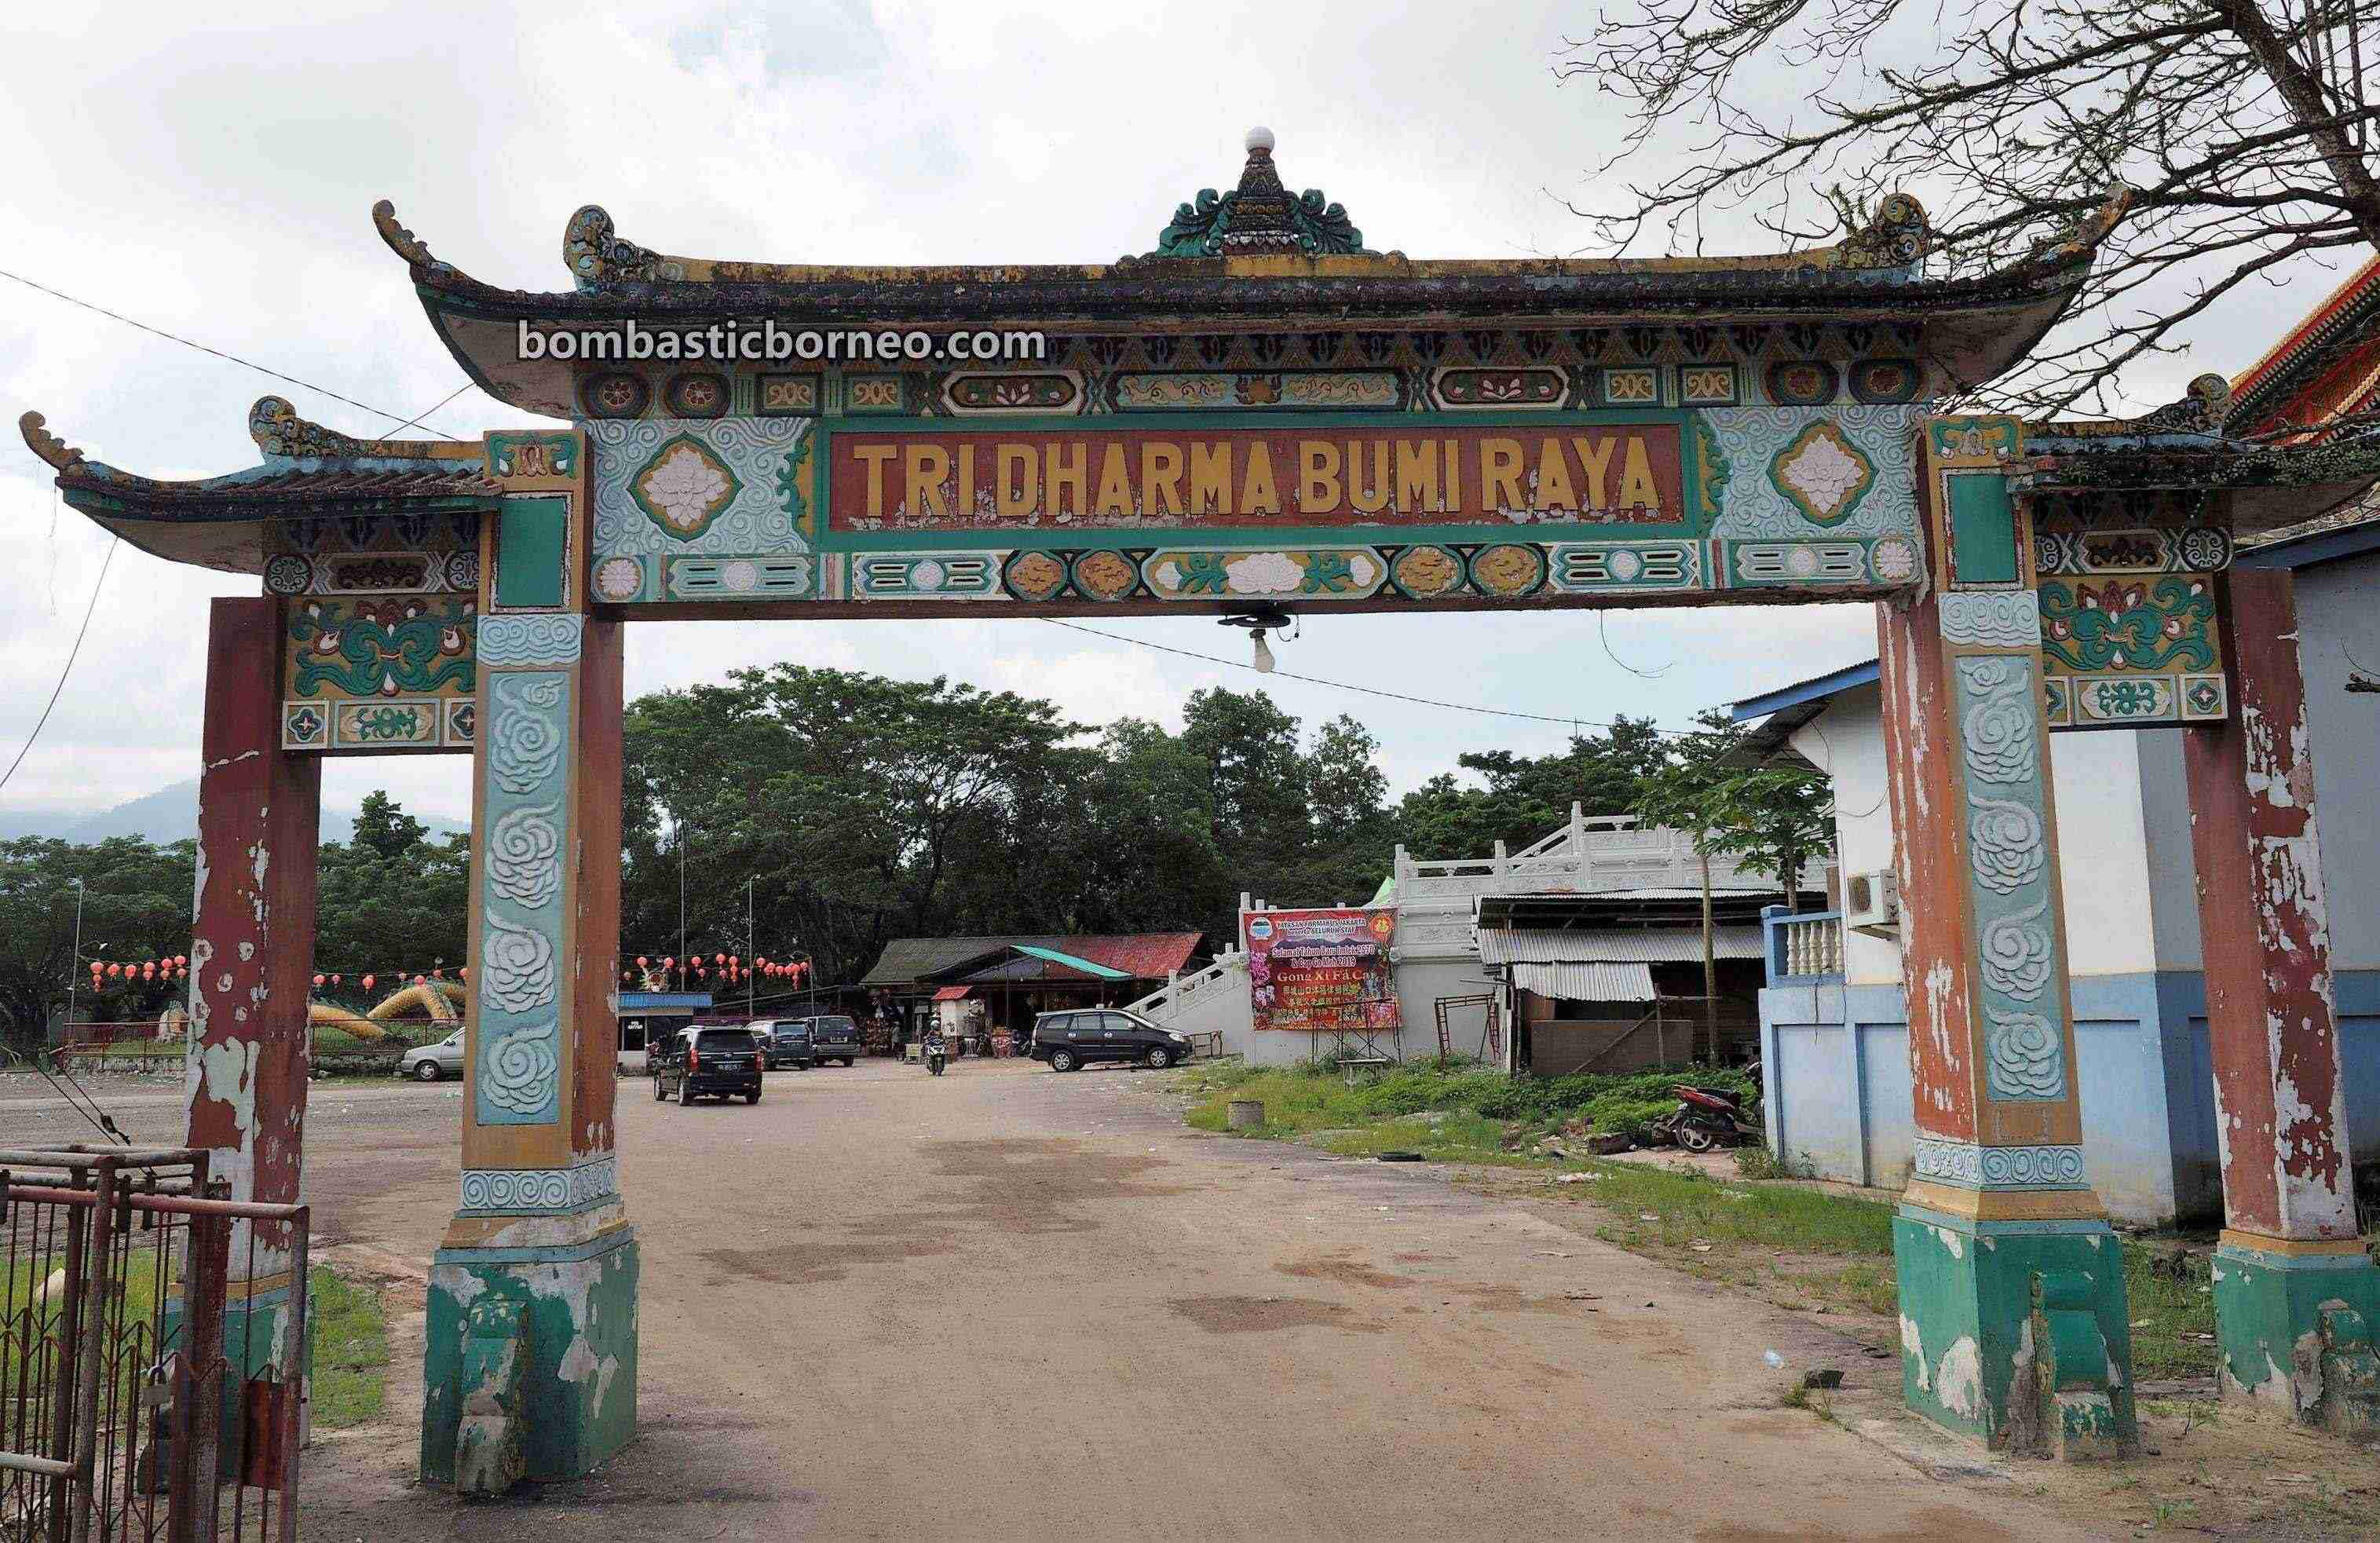 budaya, culture, Chinese temple, backpackers, destination, TiongHoa, Indonesia, Obyek wisata, Tourism, tourist attraction, travel guide, Trans Borneo,